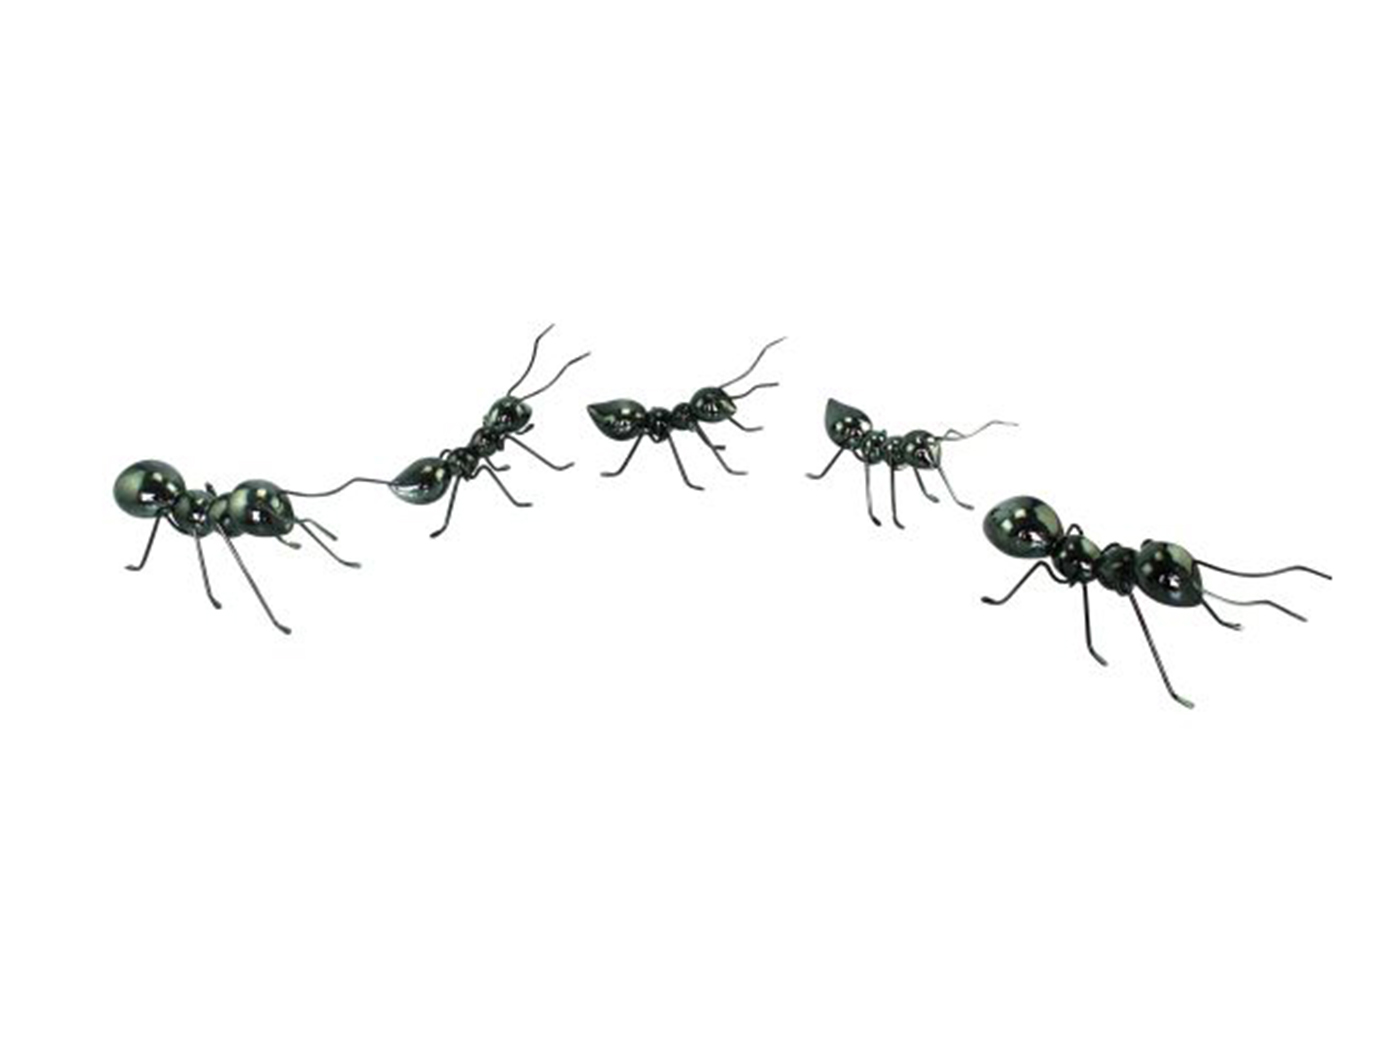 "Set of 5 Metal Ants Wall Decor Set 10""W x 4""H"